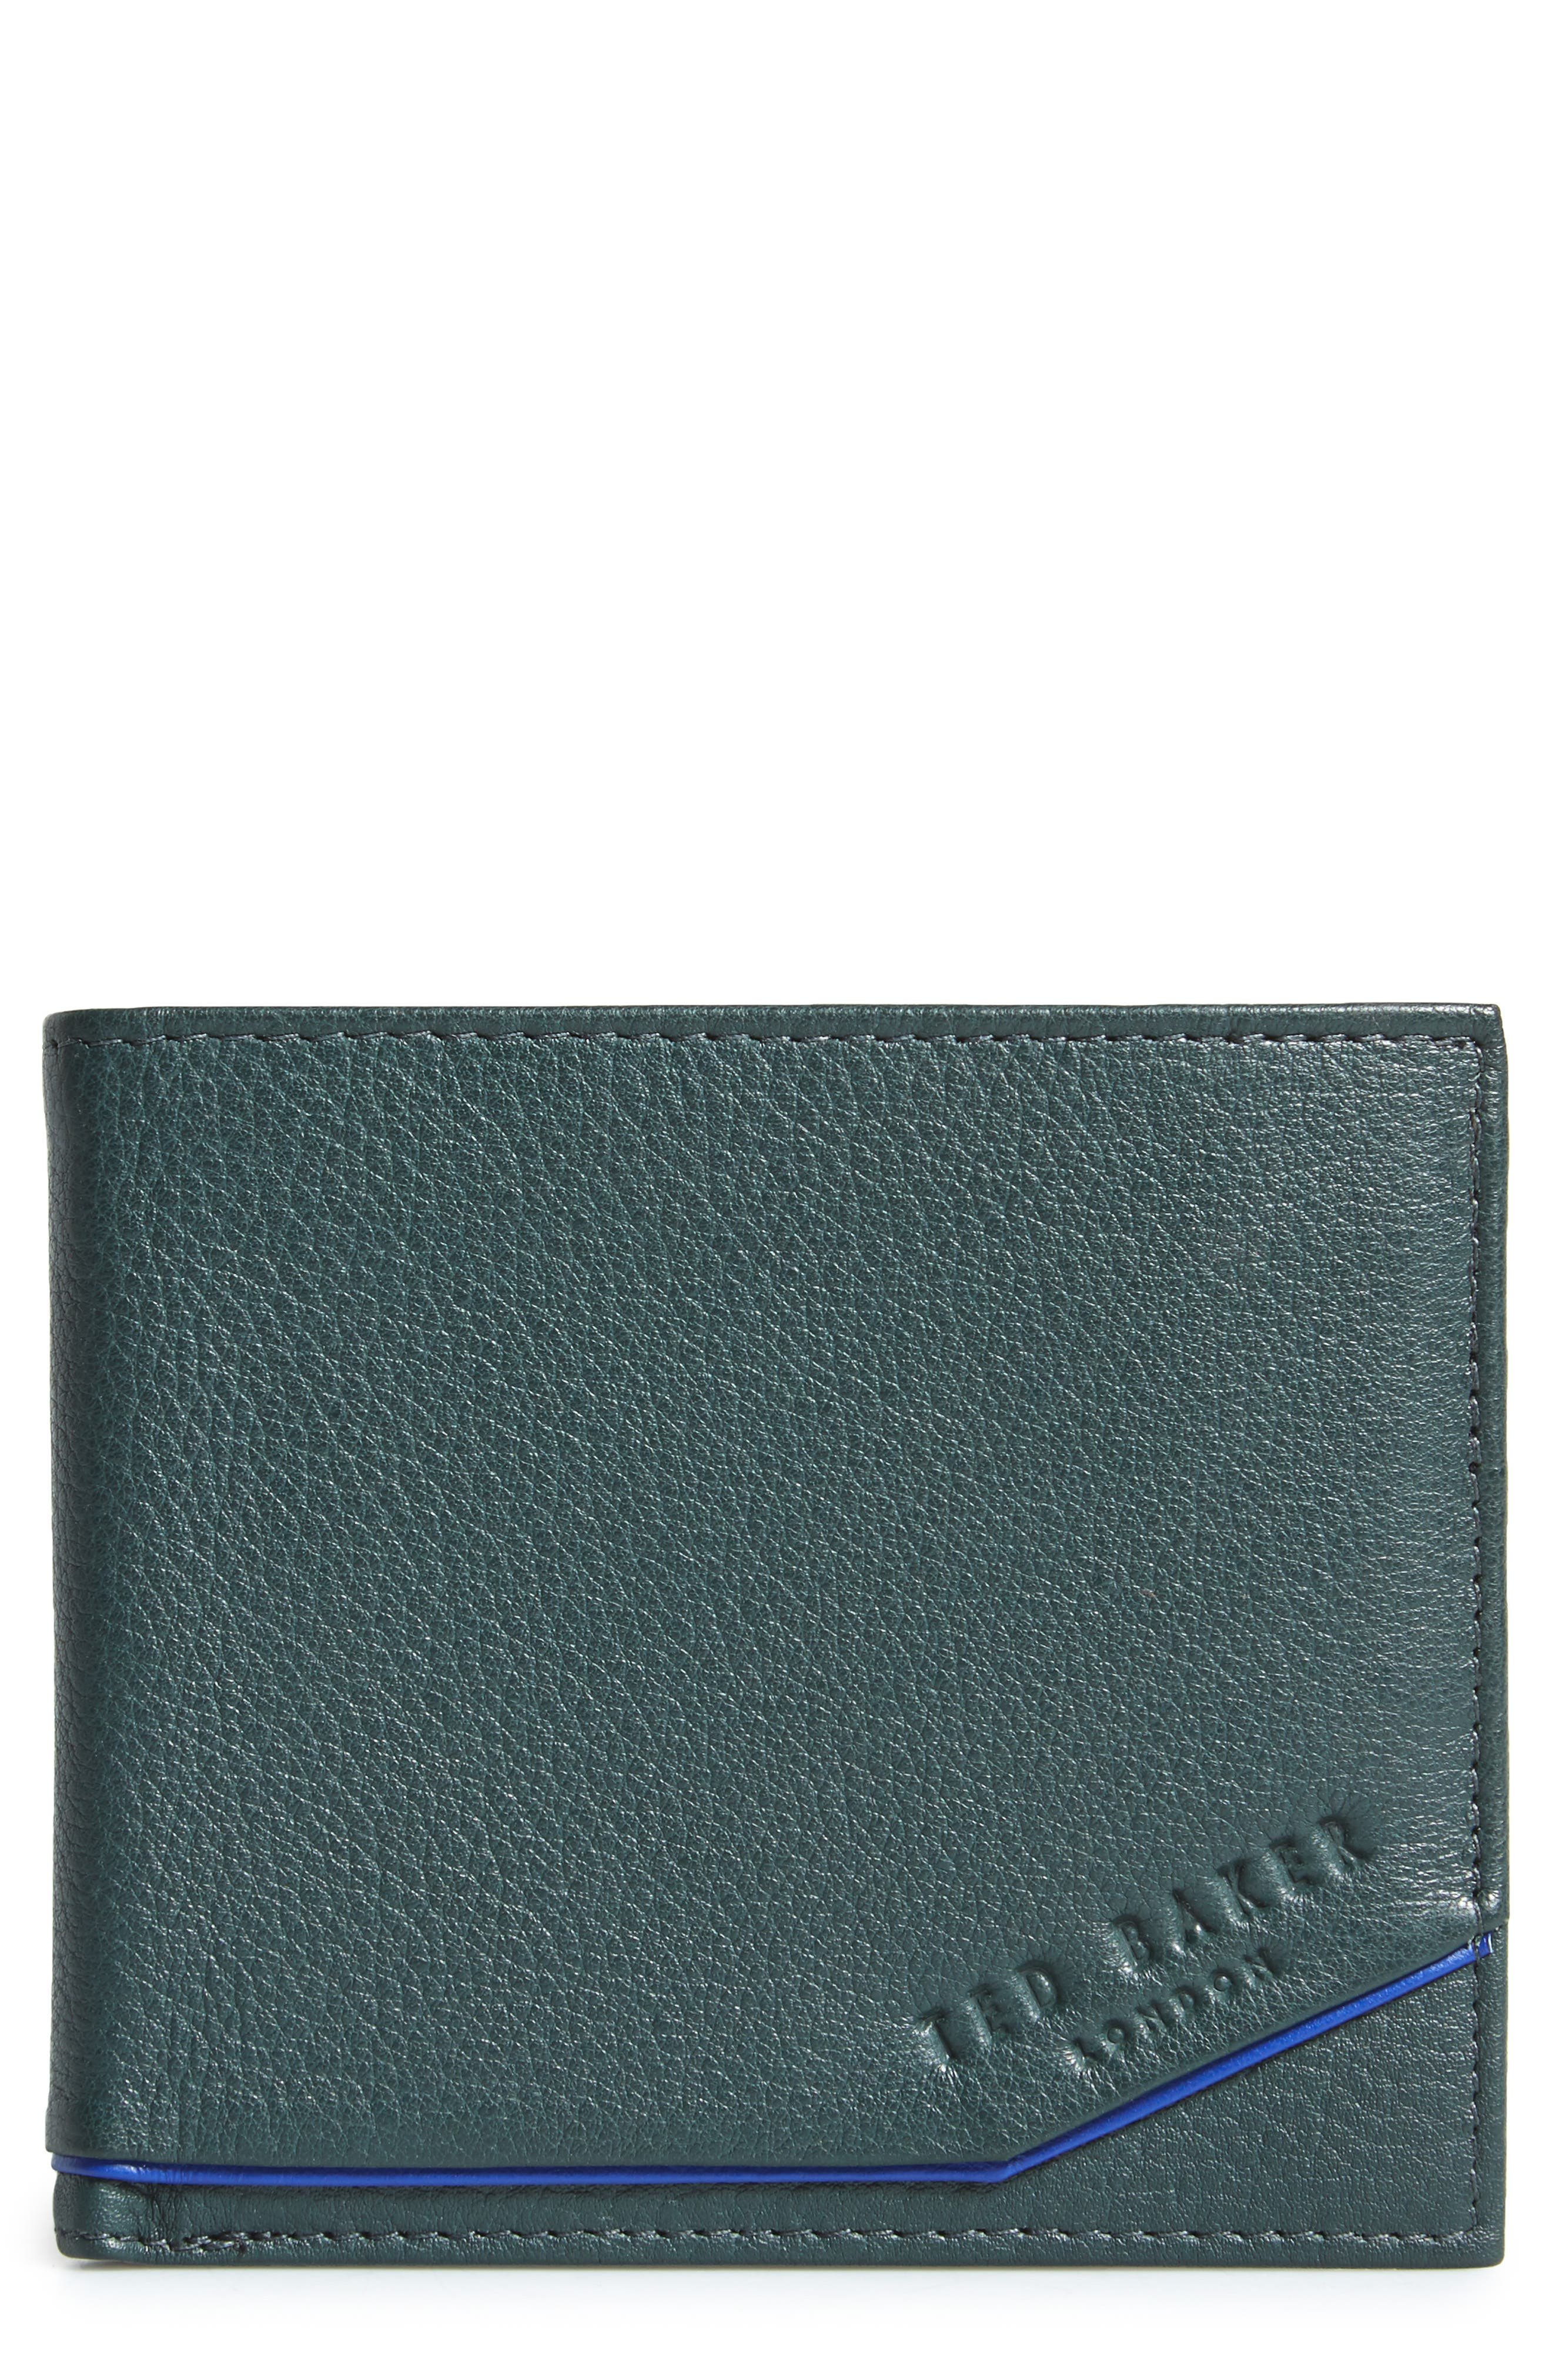 Persia Leather Wallet,                             Main thumbnail 1, color,                             Dark Green